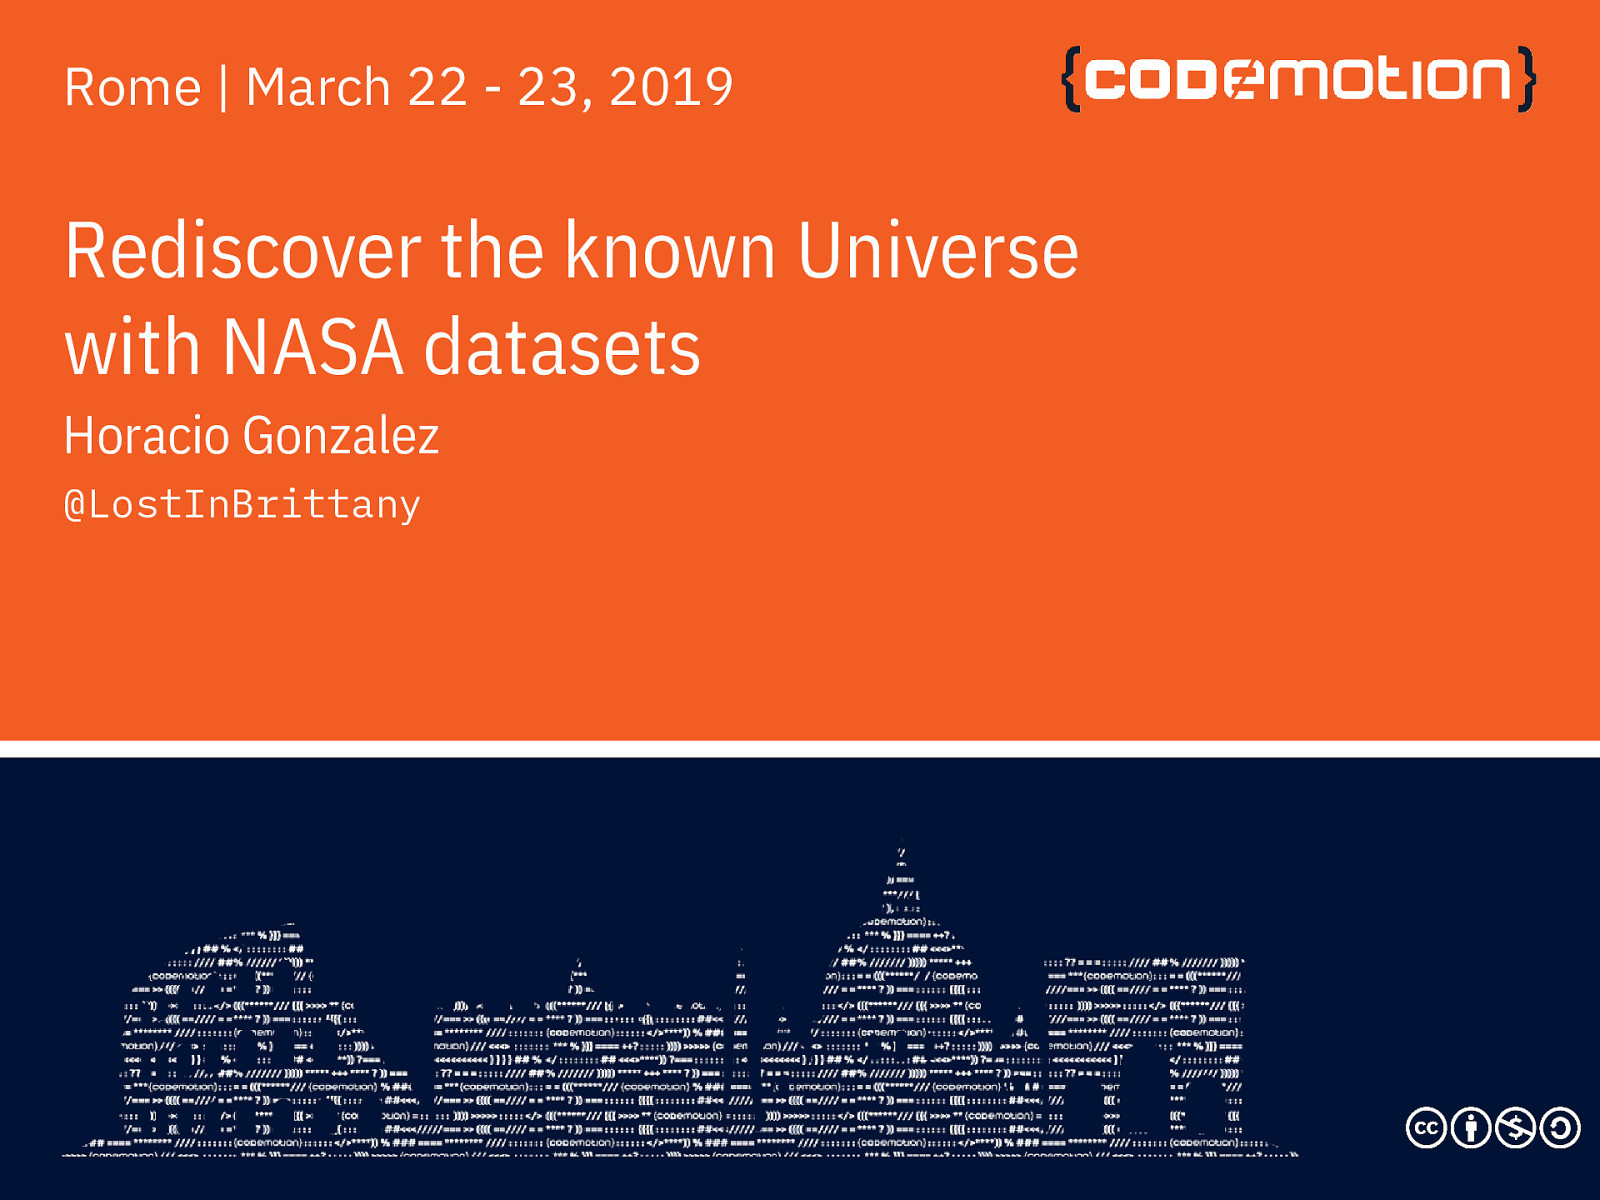 Rediscover the known Universe with NASA datasets